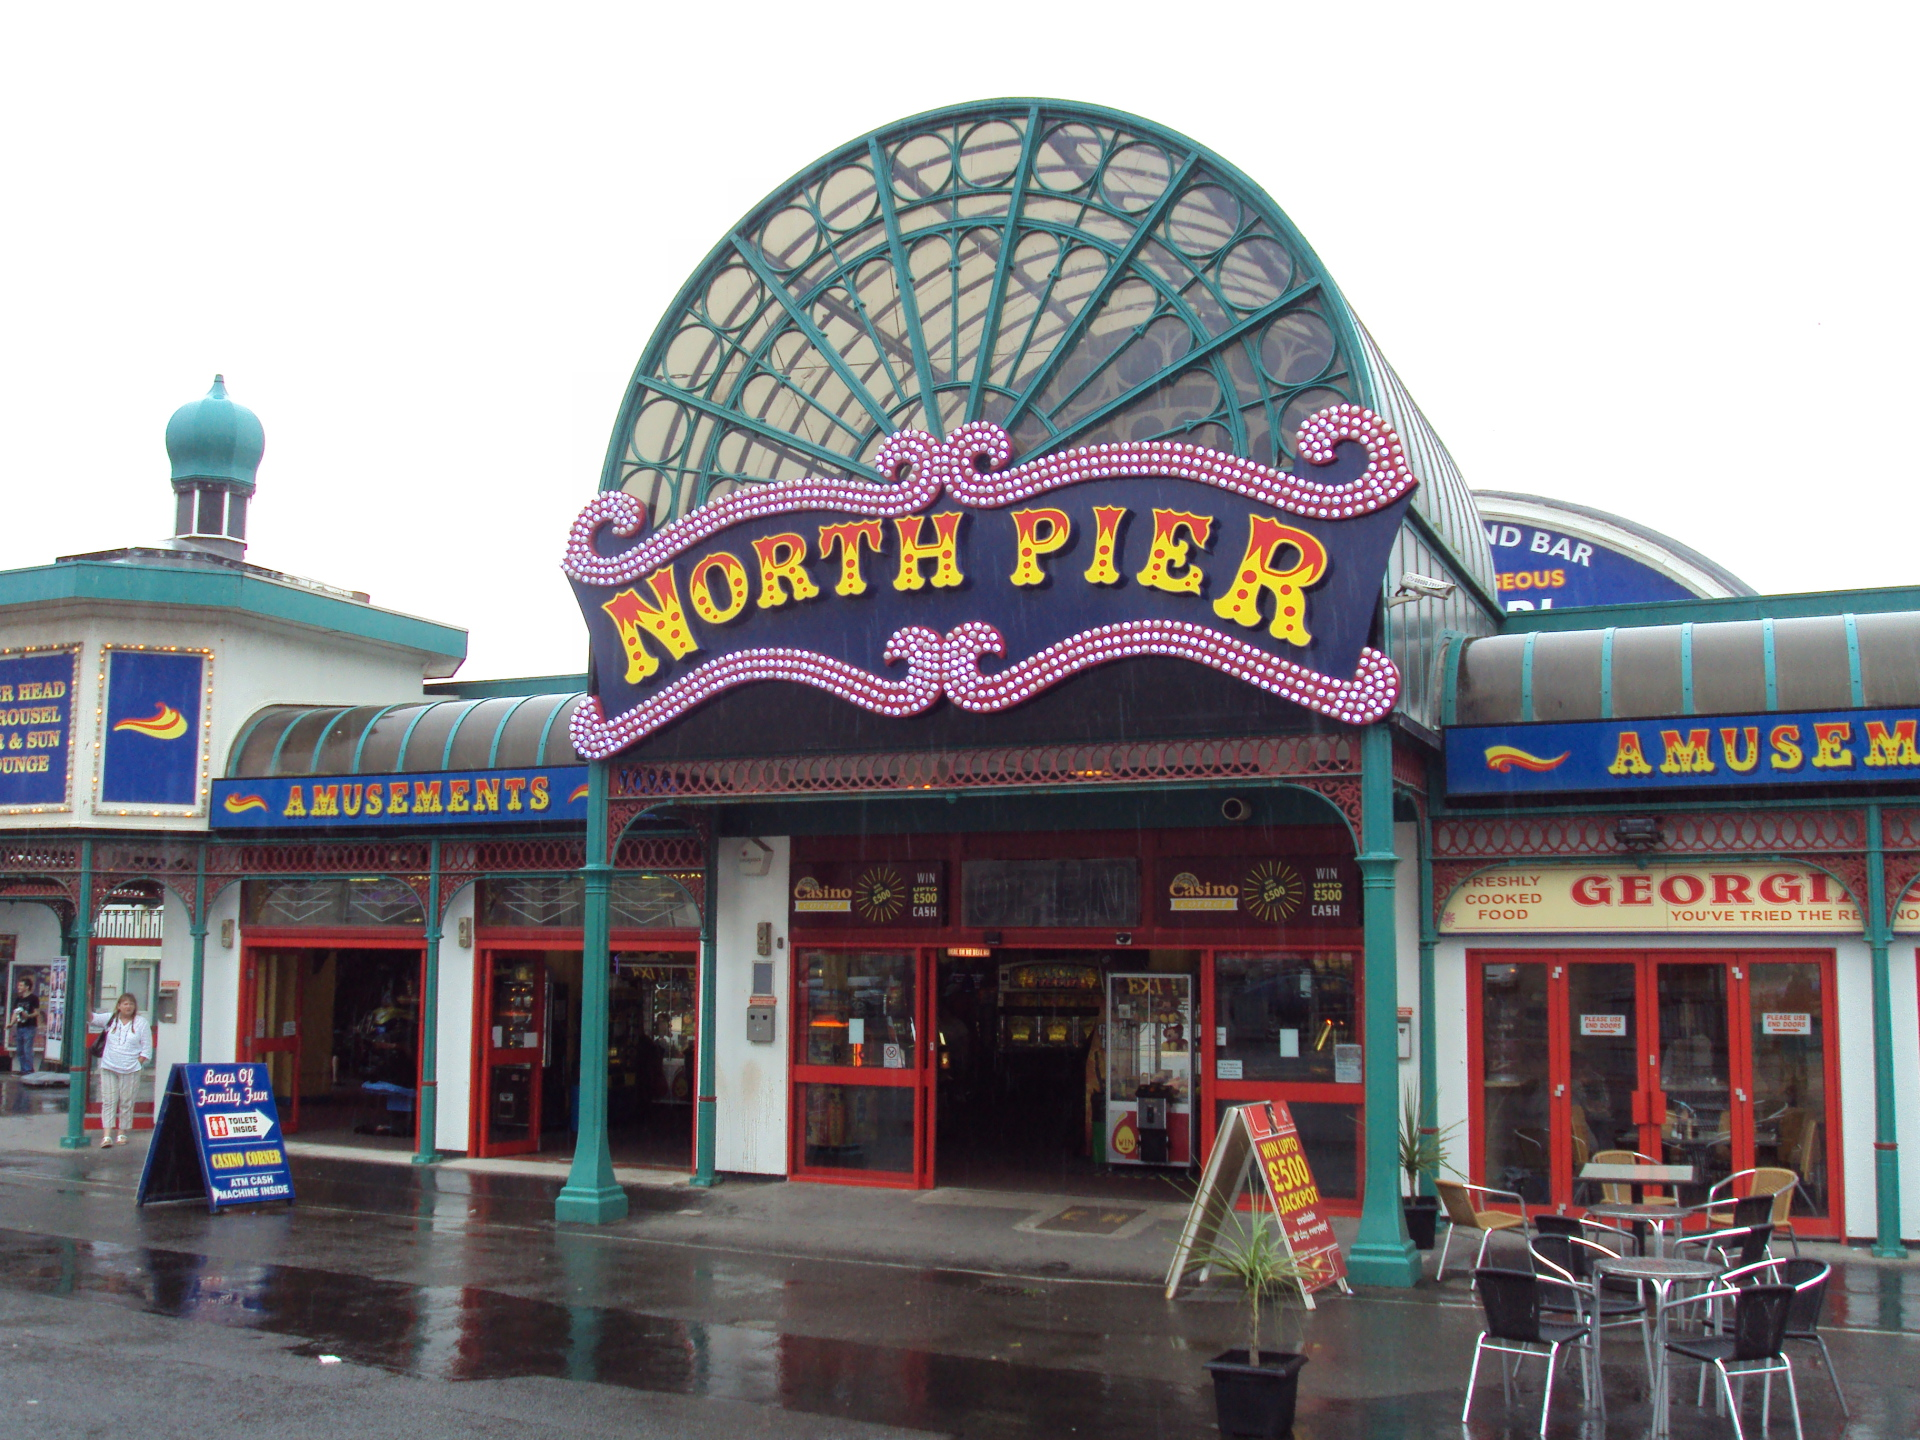 The Entrance to the North Pier Blackpool.